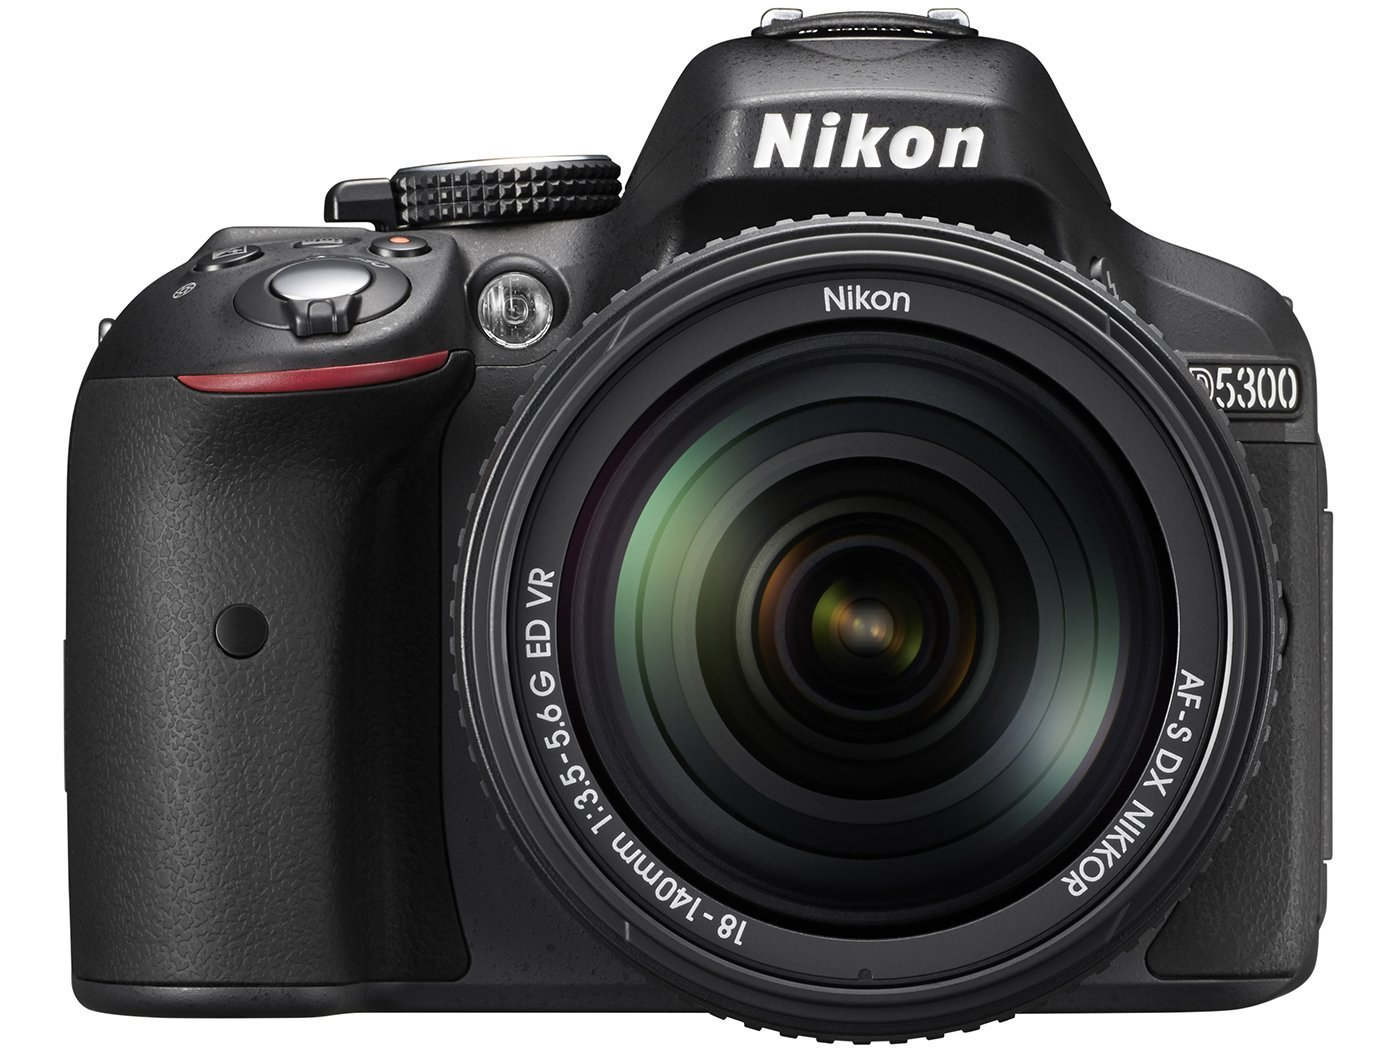 Camera Dslr Camera Price Comparison digital slrs online buy dslr cameras at best prices in nikon d5300 24 1mp slr camera black with 18 140mm vr kit lens card and bag